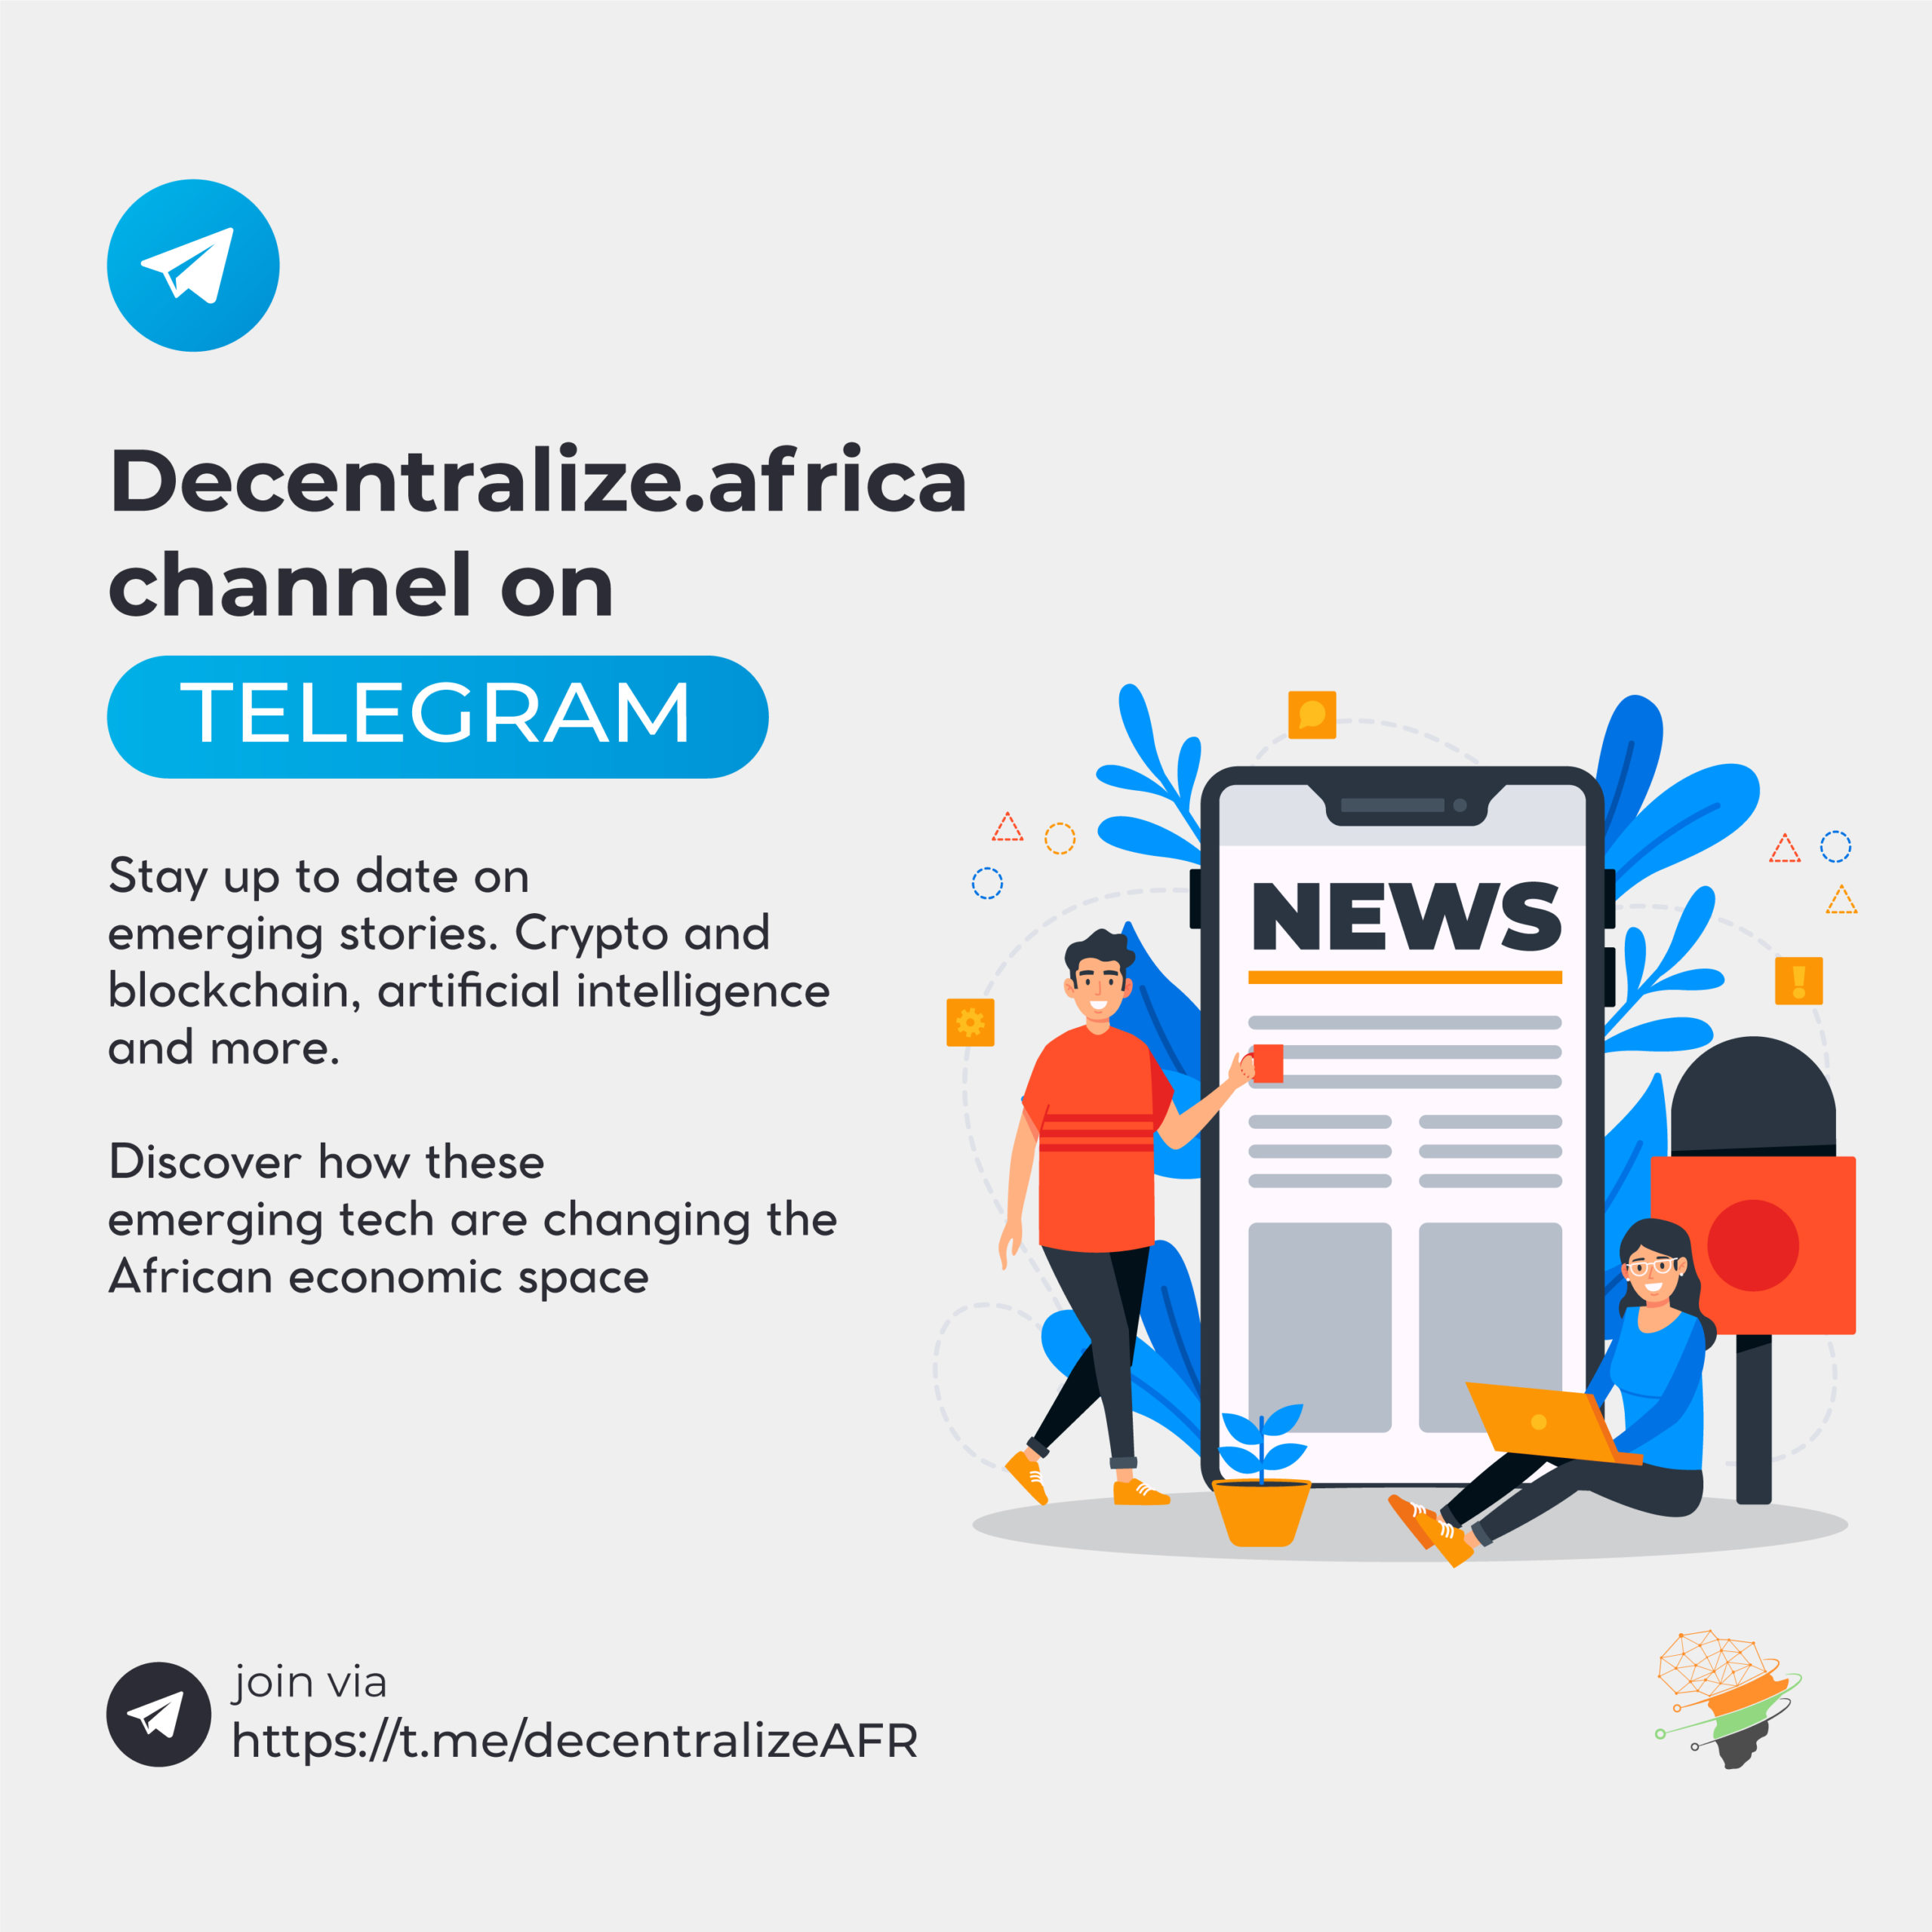 Decentralize africa telegram channel